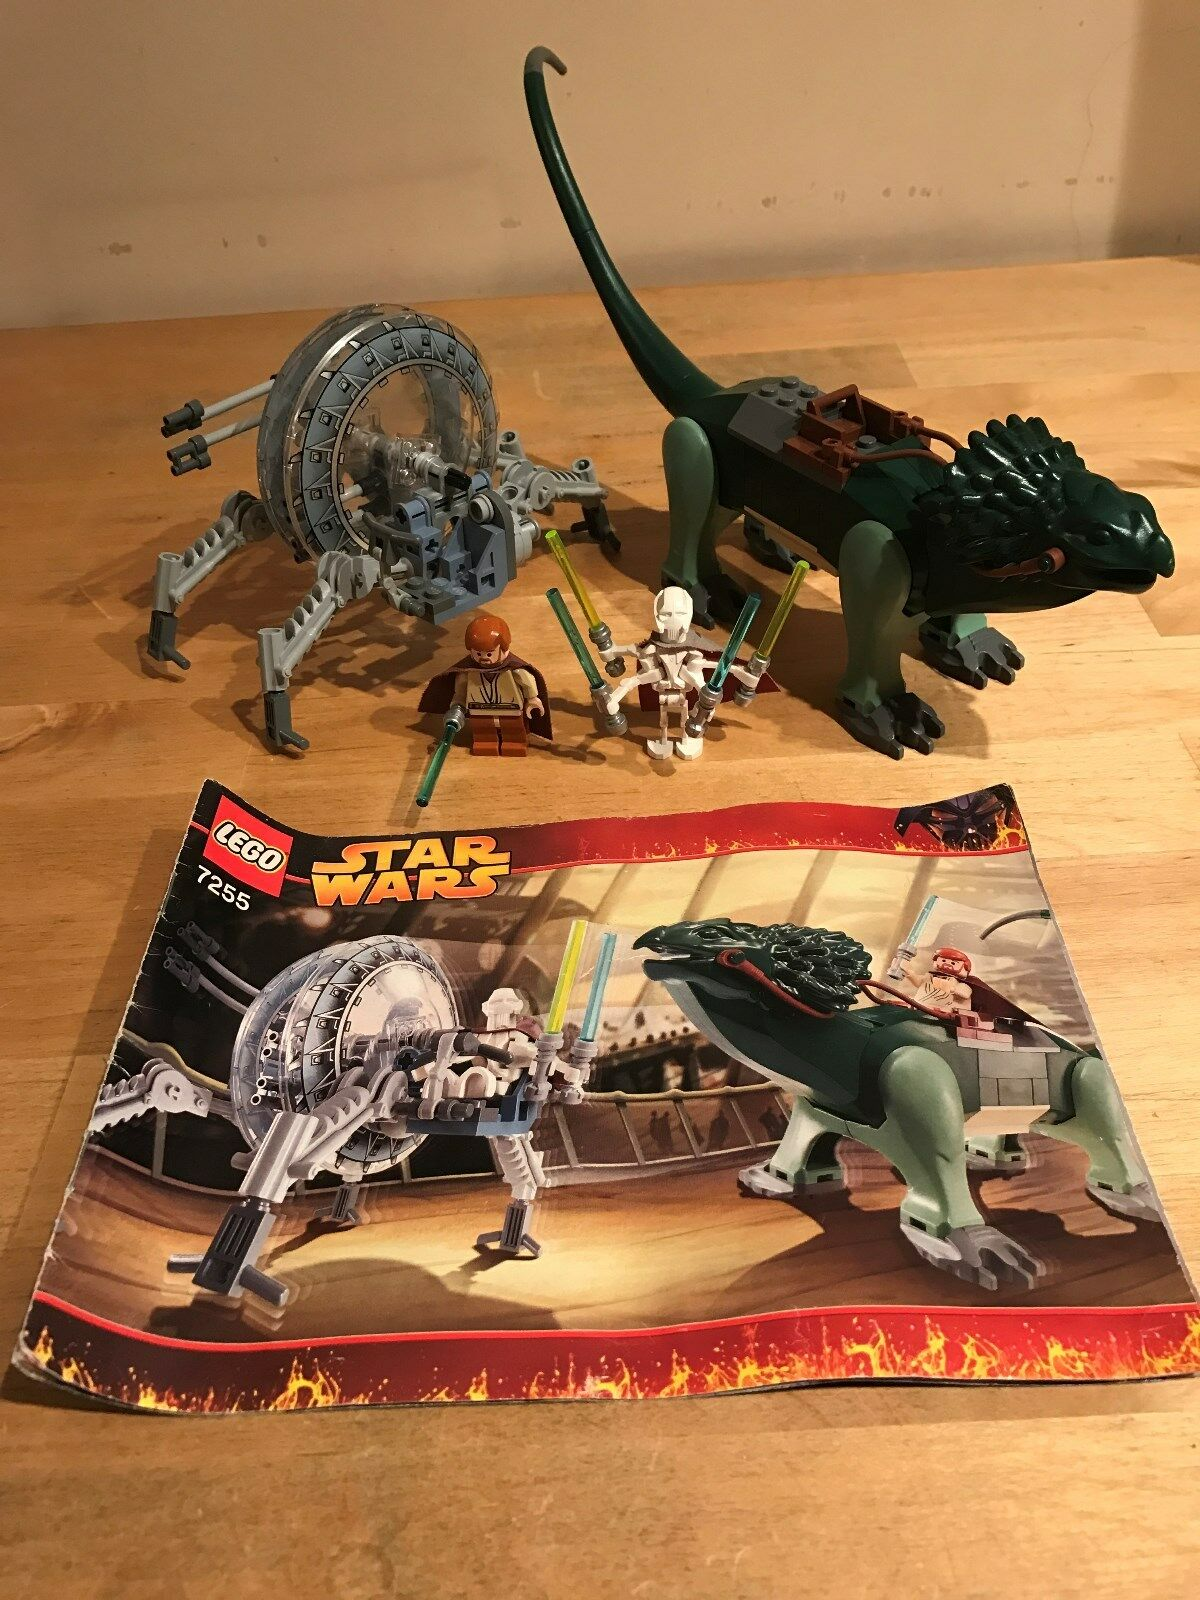 Lego Star Wars 7255 - General Grievous Chase (Unboxed)